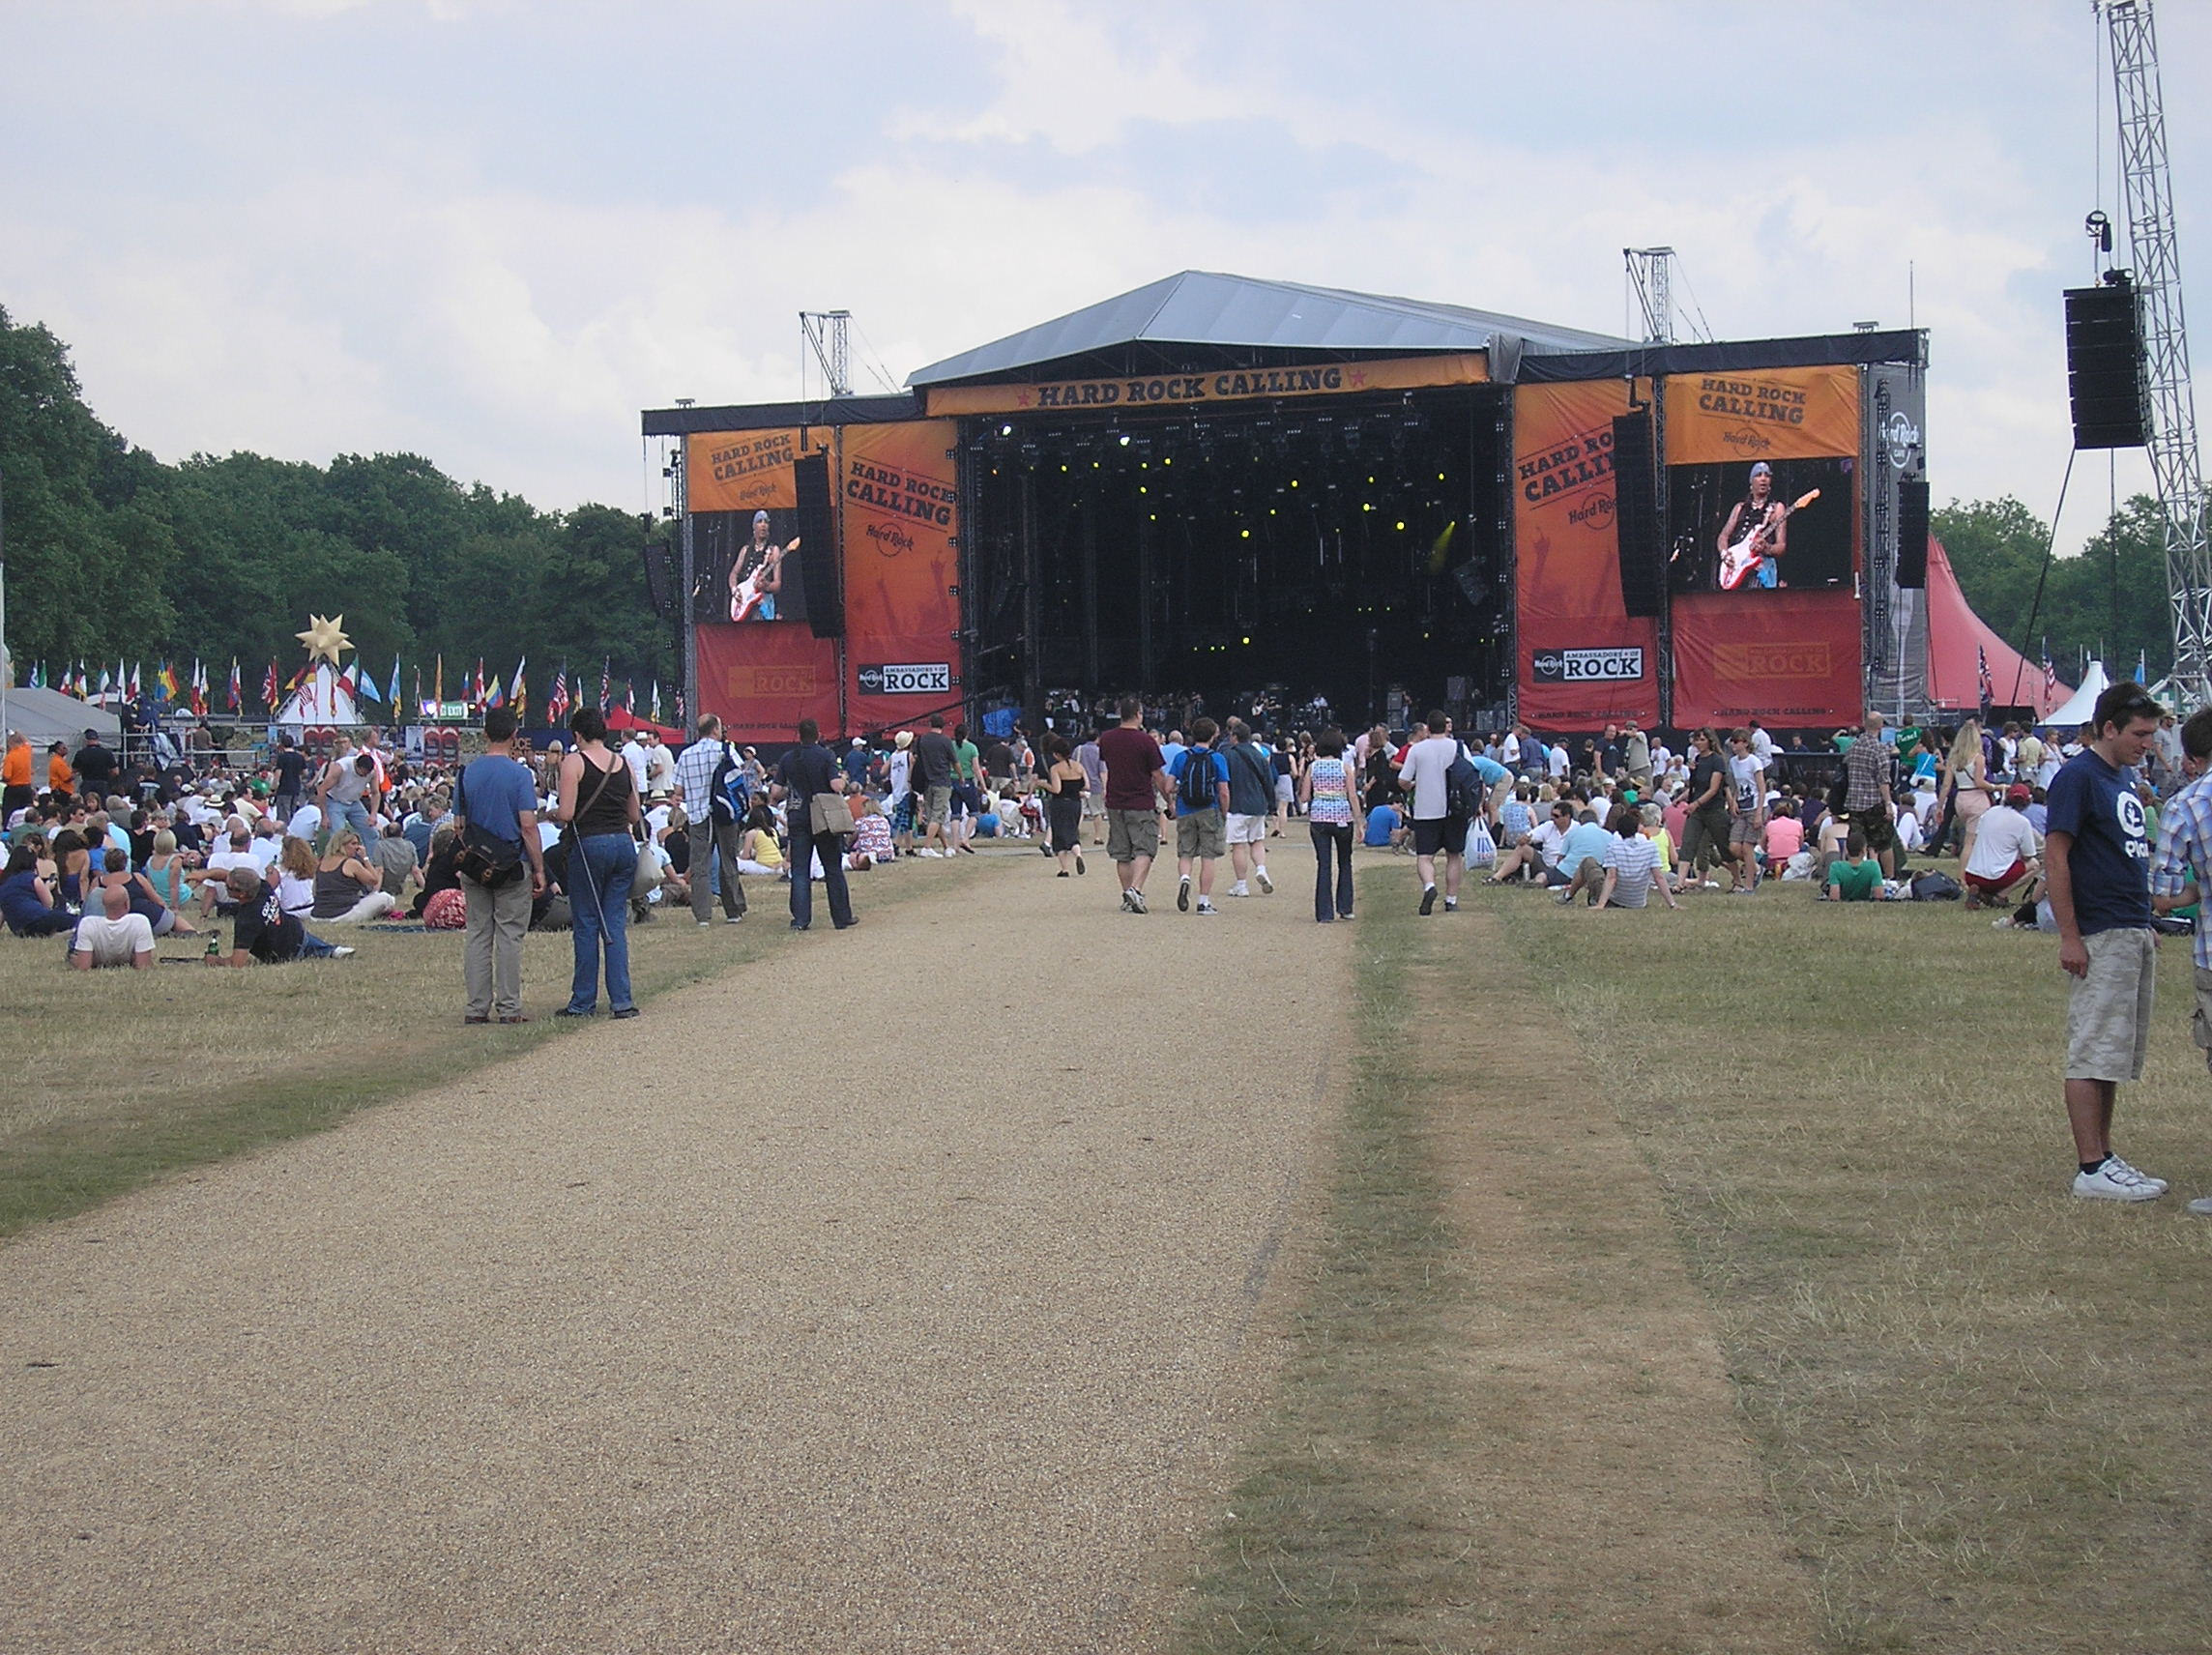 The 2009 Hard Rock Calling Festival too place at Hyde Park, London on 26 - 28 June. The headline acts were The Killers (friday), Neil Young (saturday) and Bruce Springsteen (sunday). Approx 50,000 people attended the event each day.